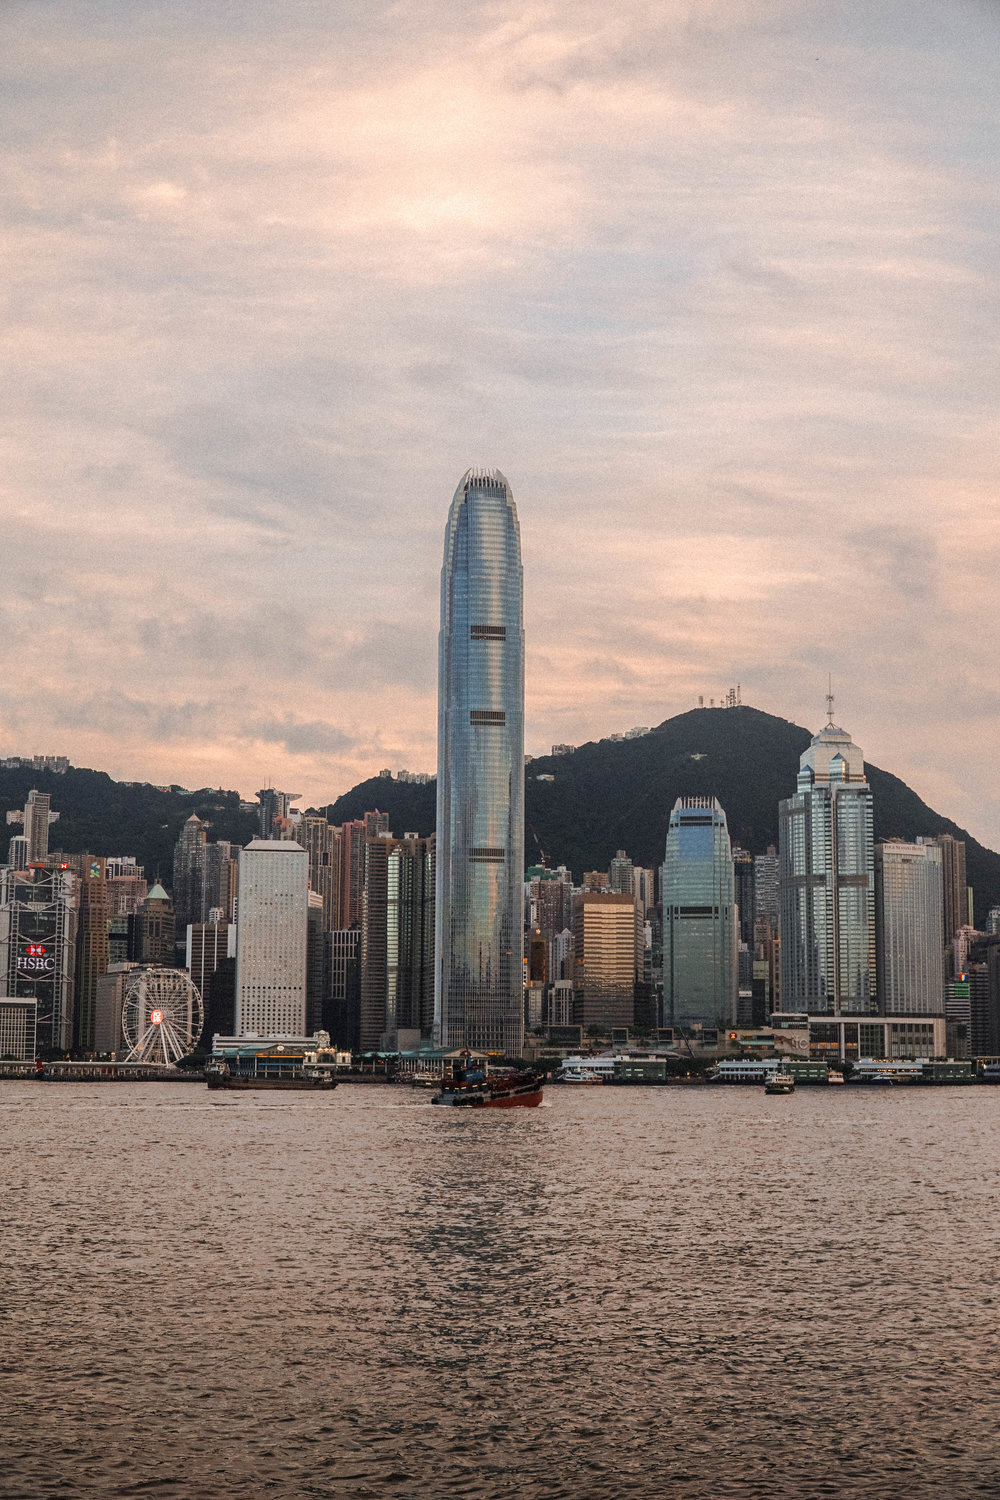 Just near the ferry piers you will find this beautiful view from Hong Kong main land looking at Hong Kong Island.